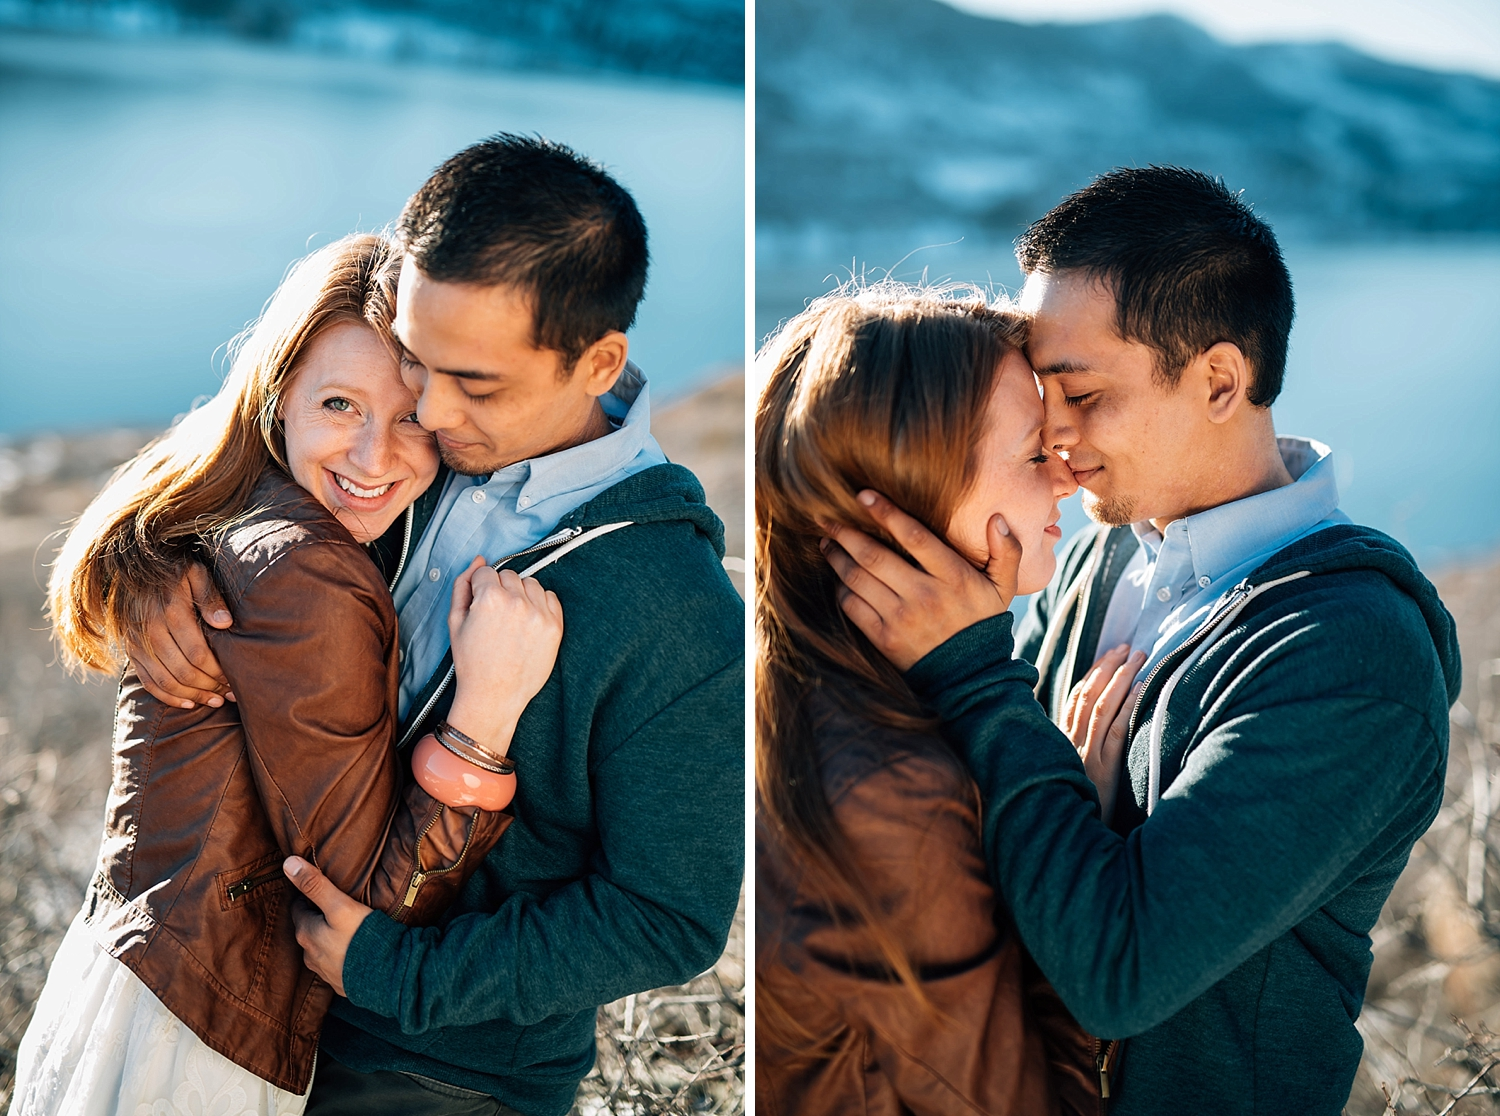 The snow covering the hills at Horsetooth reservoir is so beautiful for this Fort Collins engagement photo shoot.Photo by Maddie Mae Photography